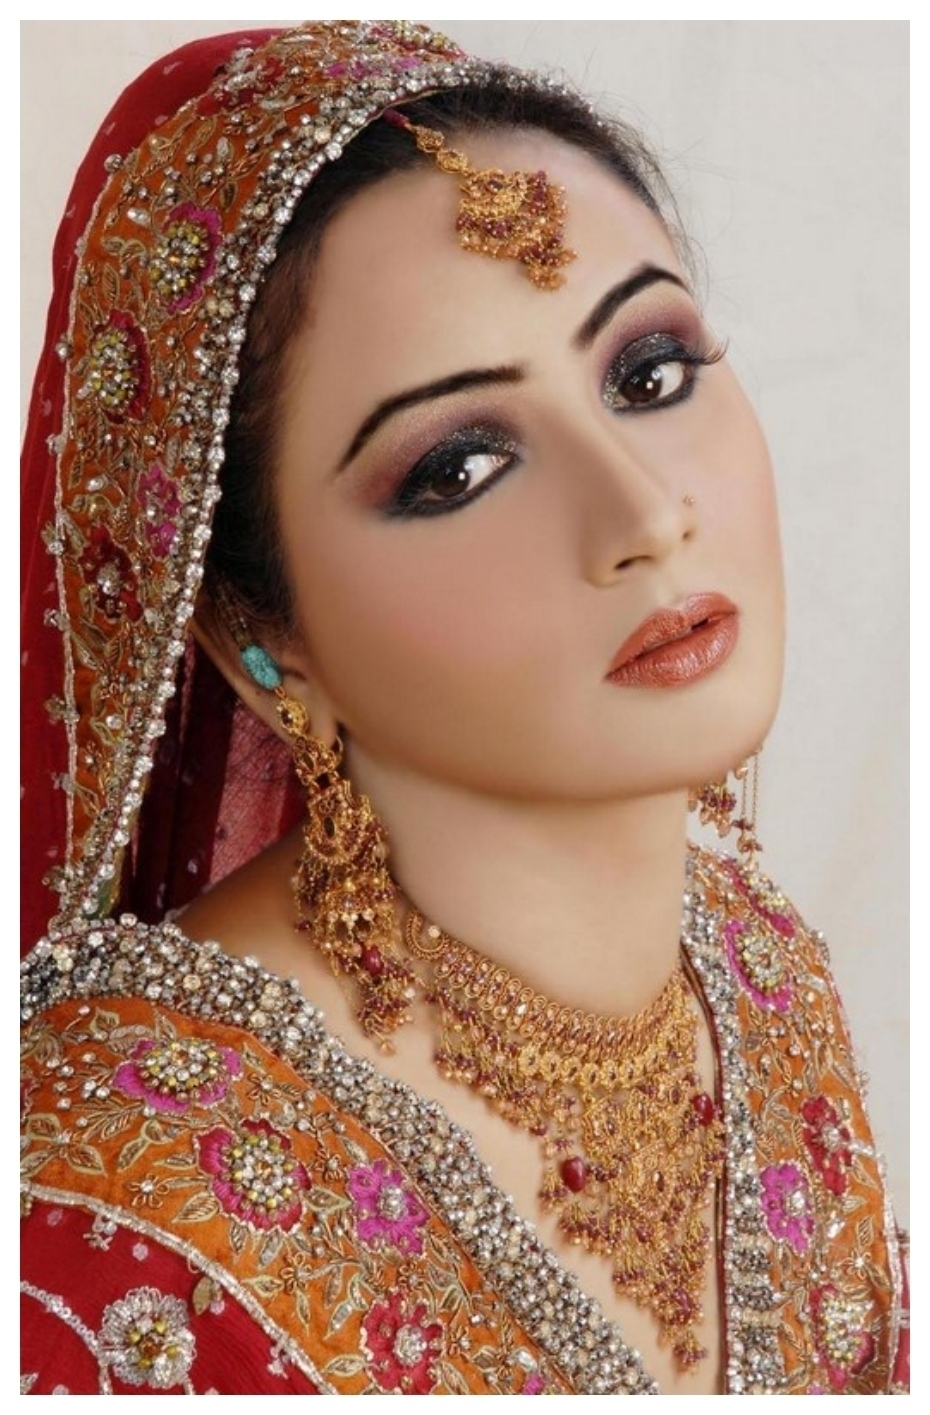 pakistani bridal makeup photos 2013 - wavy haircut